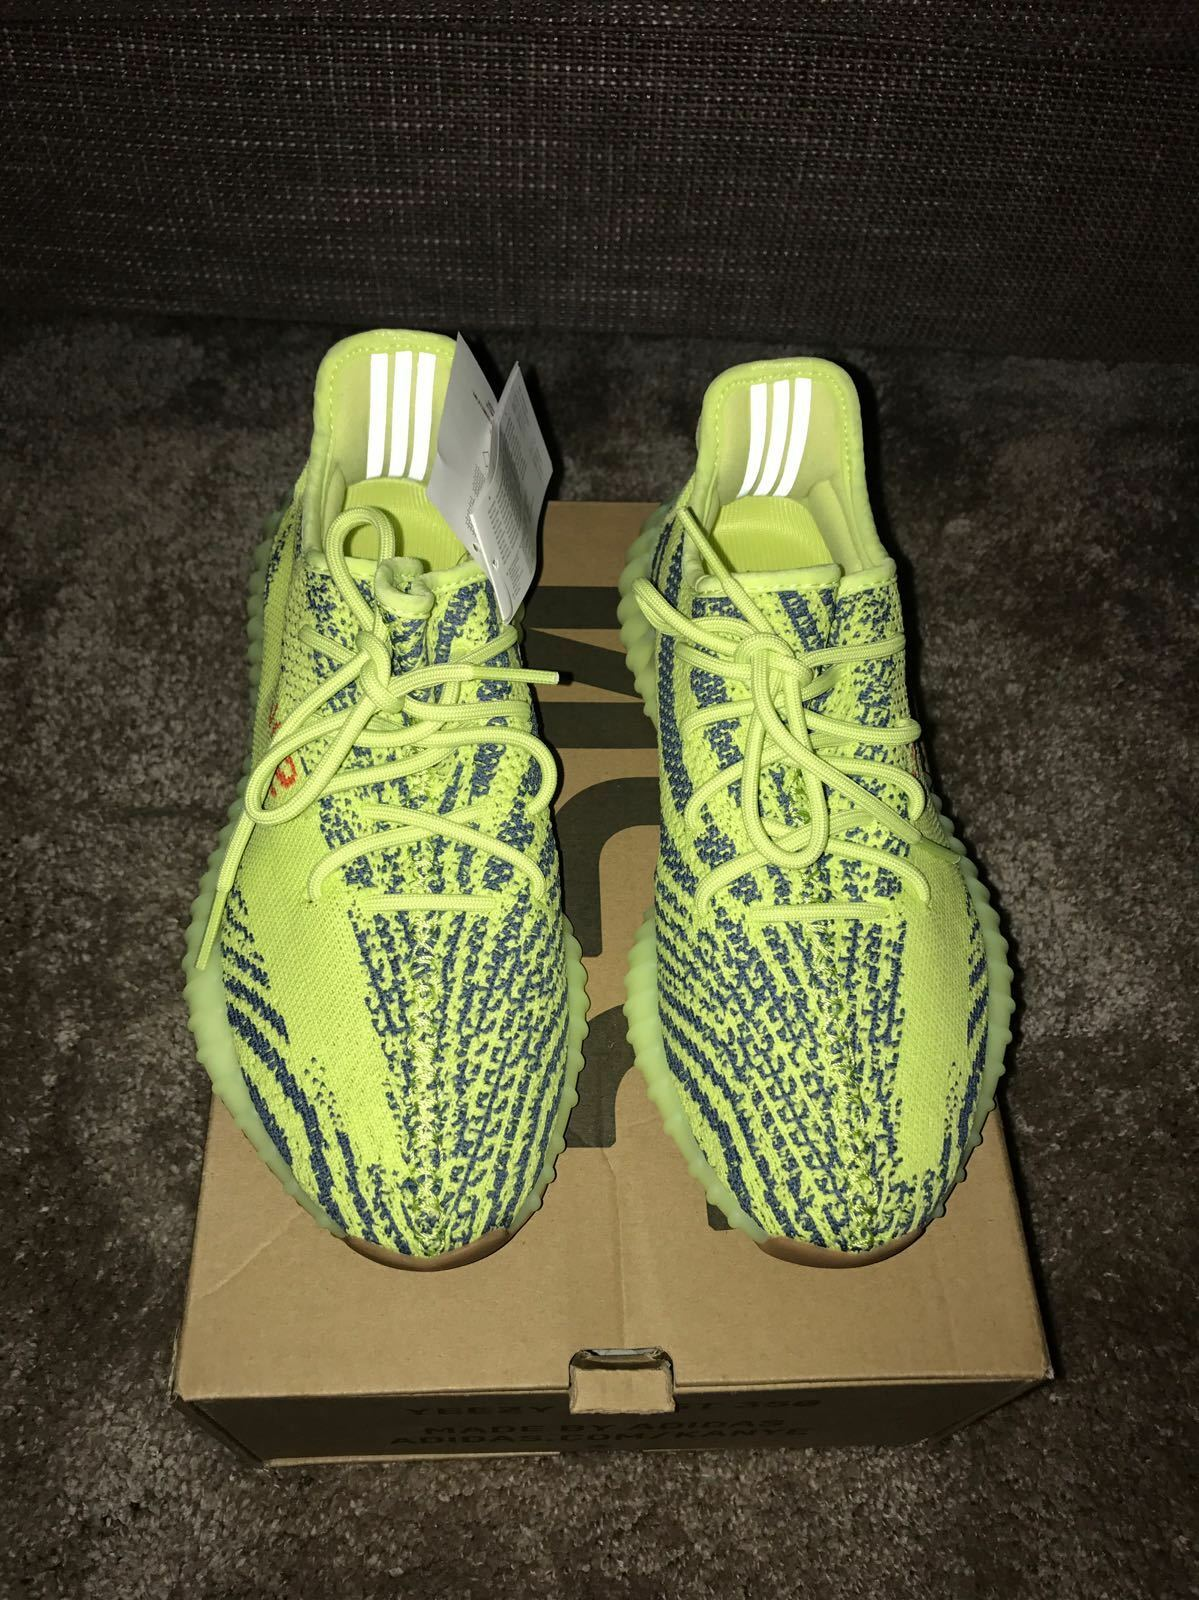 Adidas Yeezy Boost 350 V2 FROZEN YELLOW Comfortable